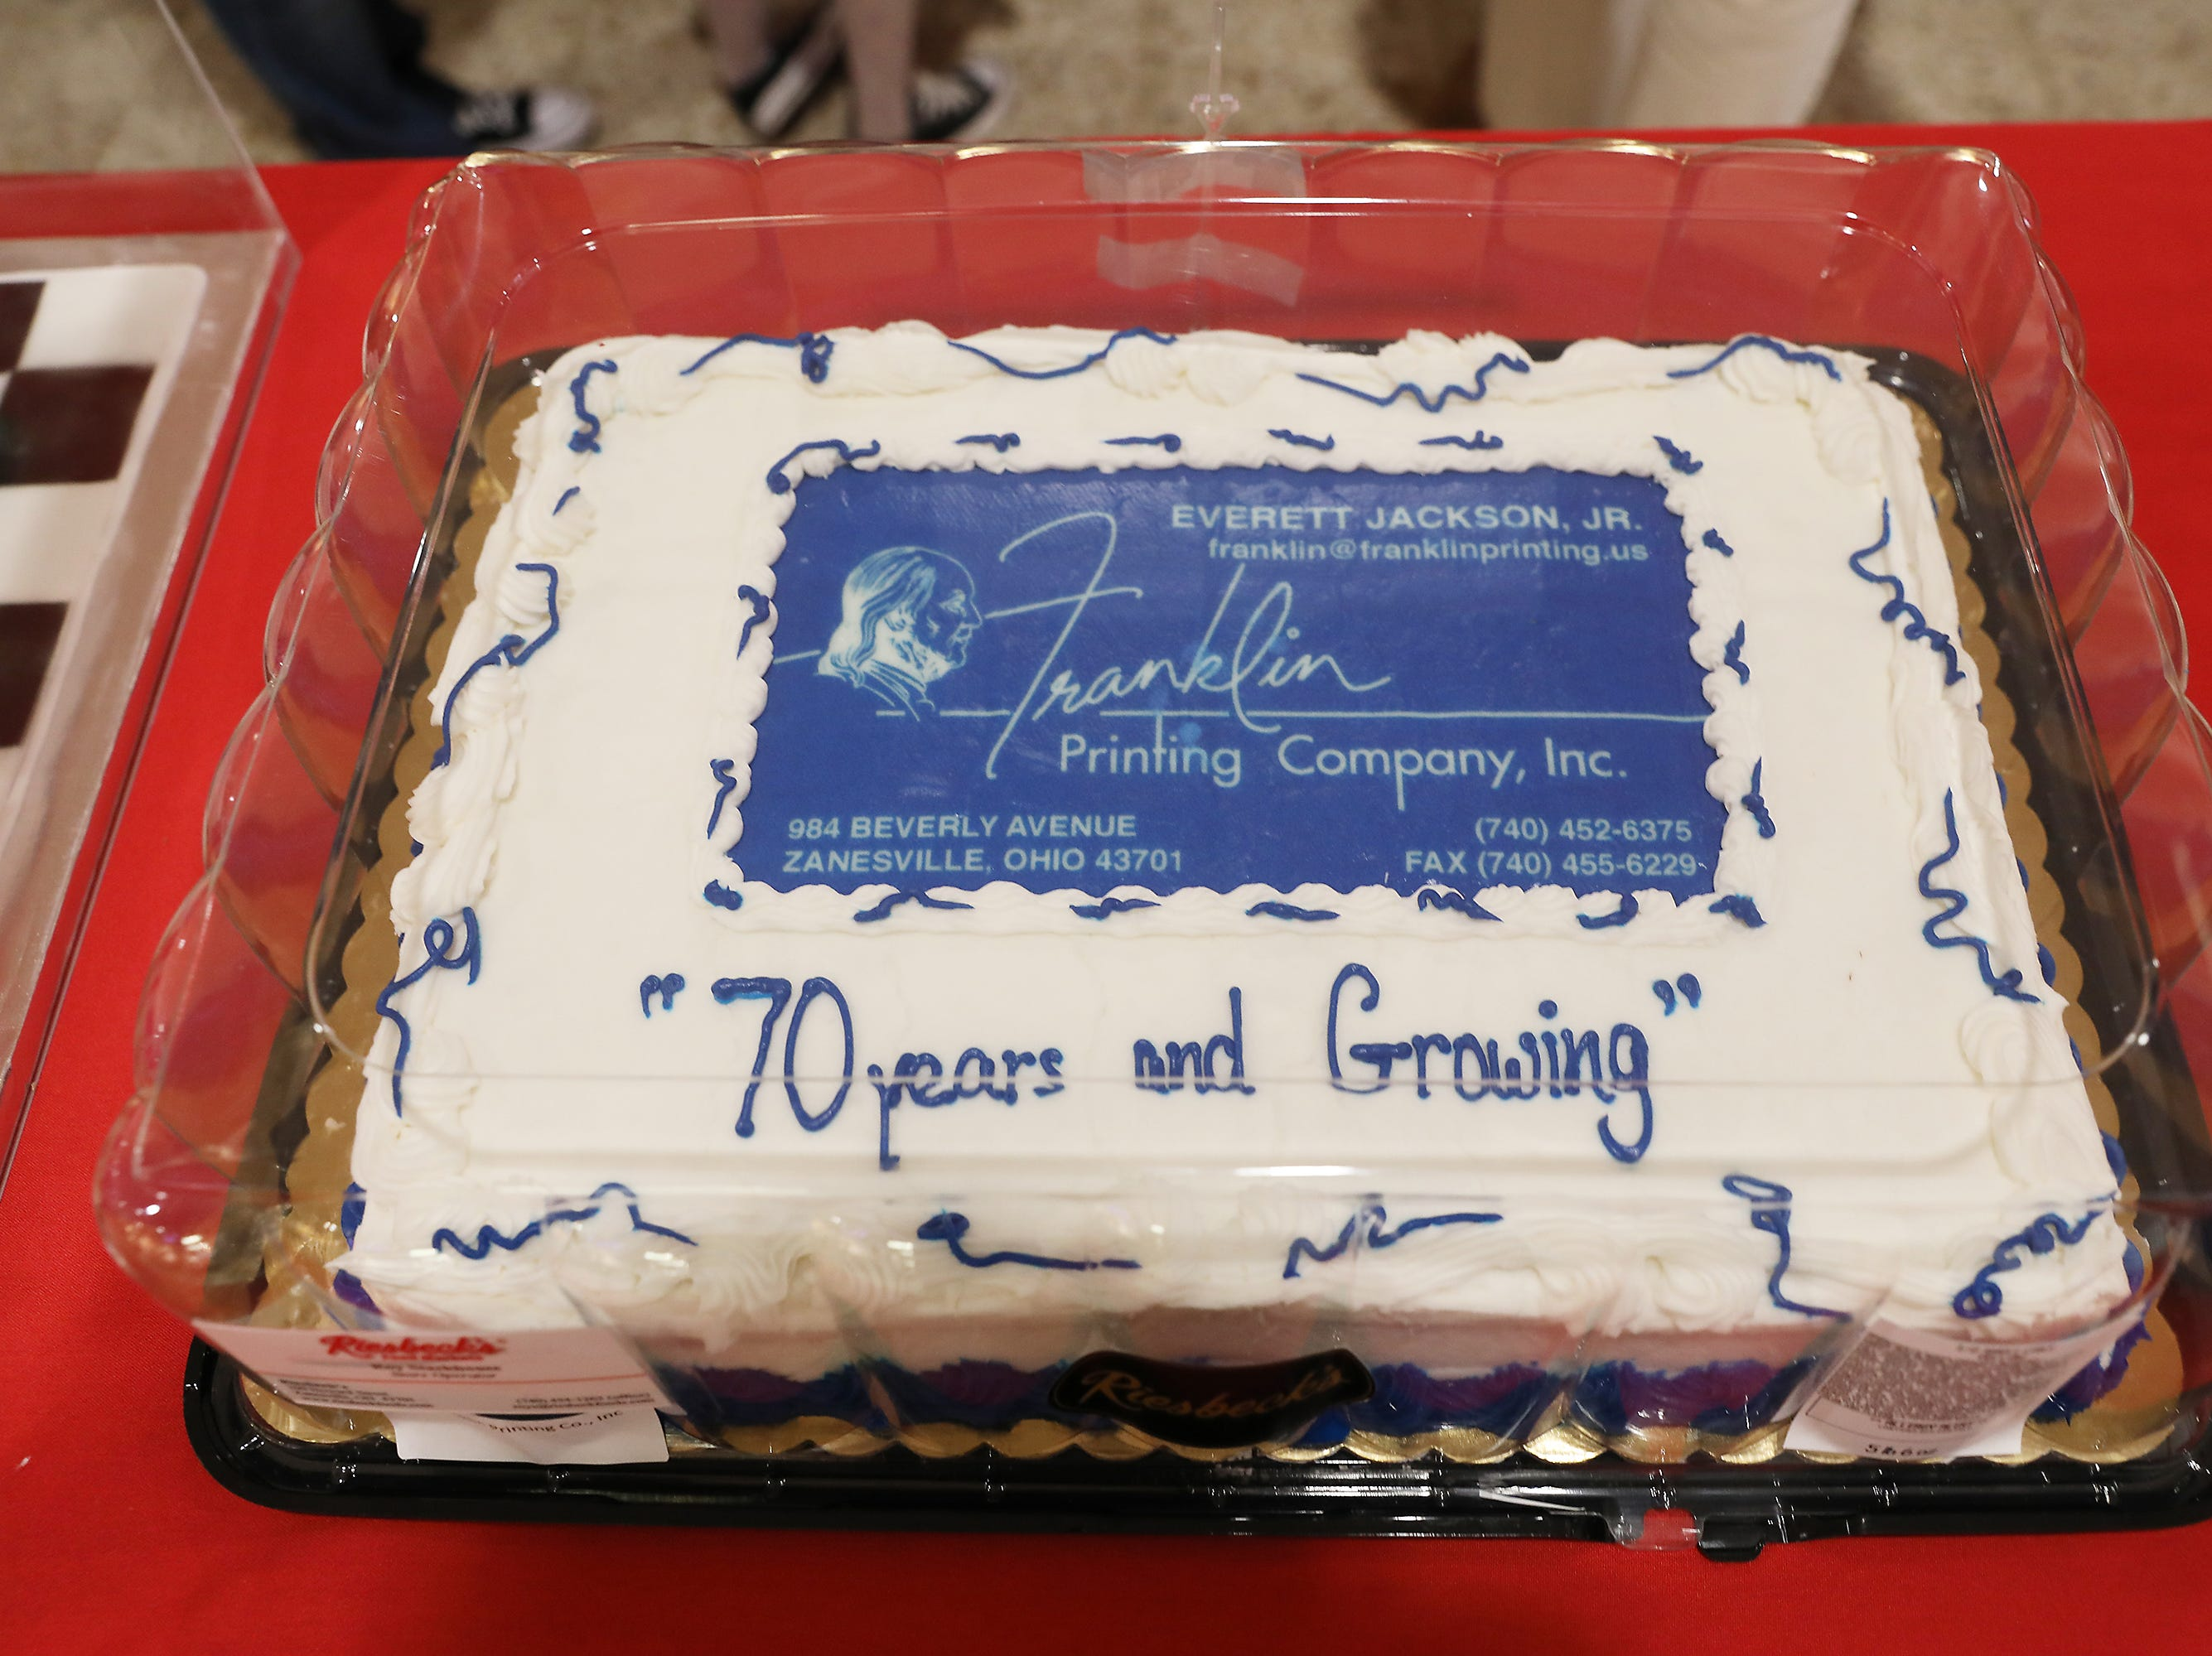 4 P.M. Friday cake 374 Franklin Printing - 1,500 full color advertising cards mailed in county; $400